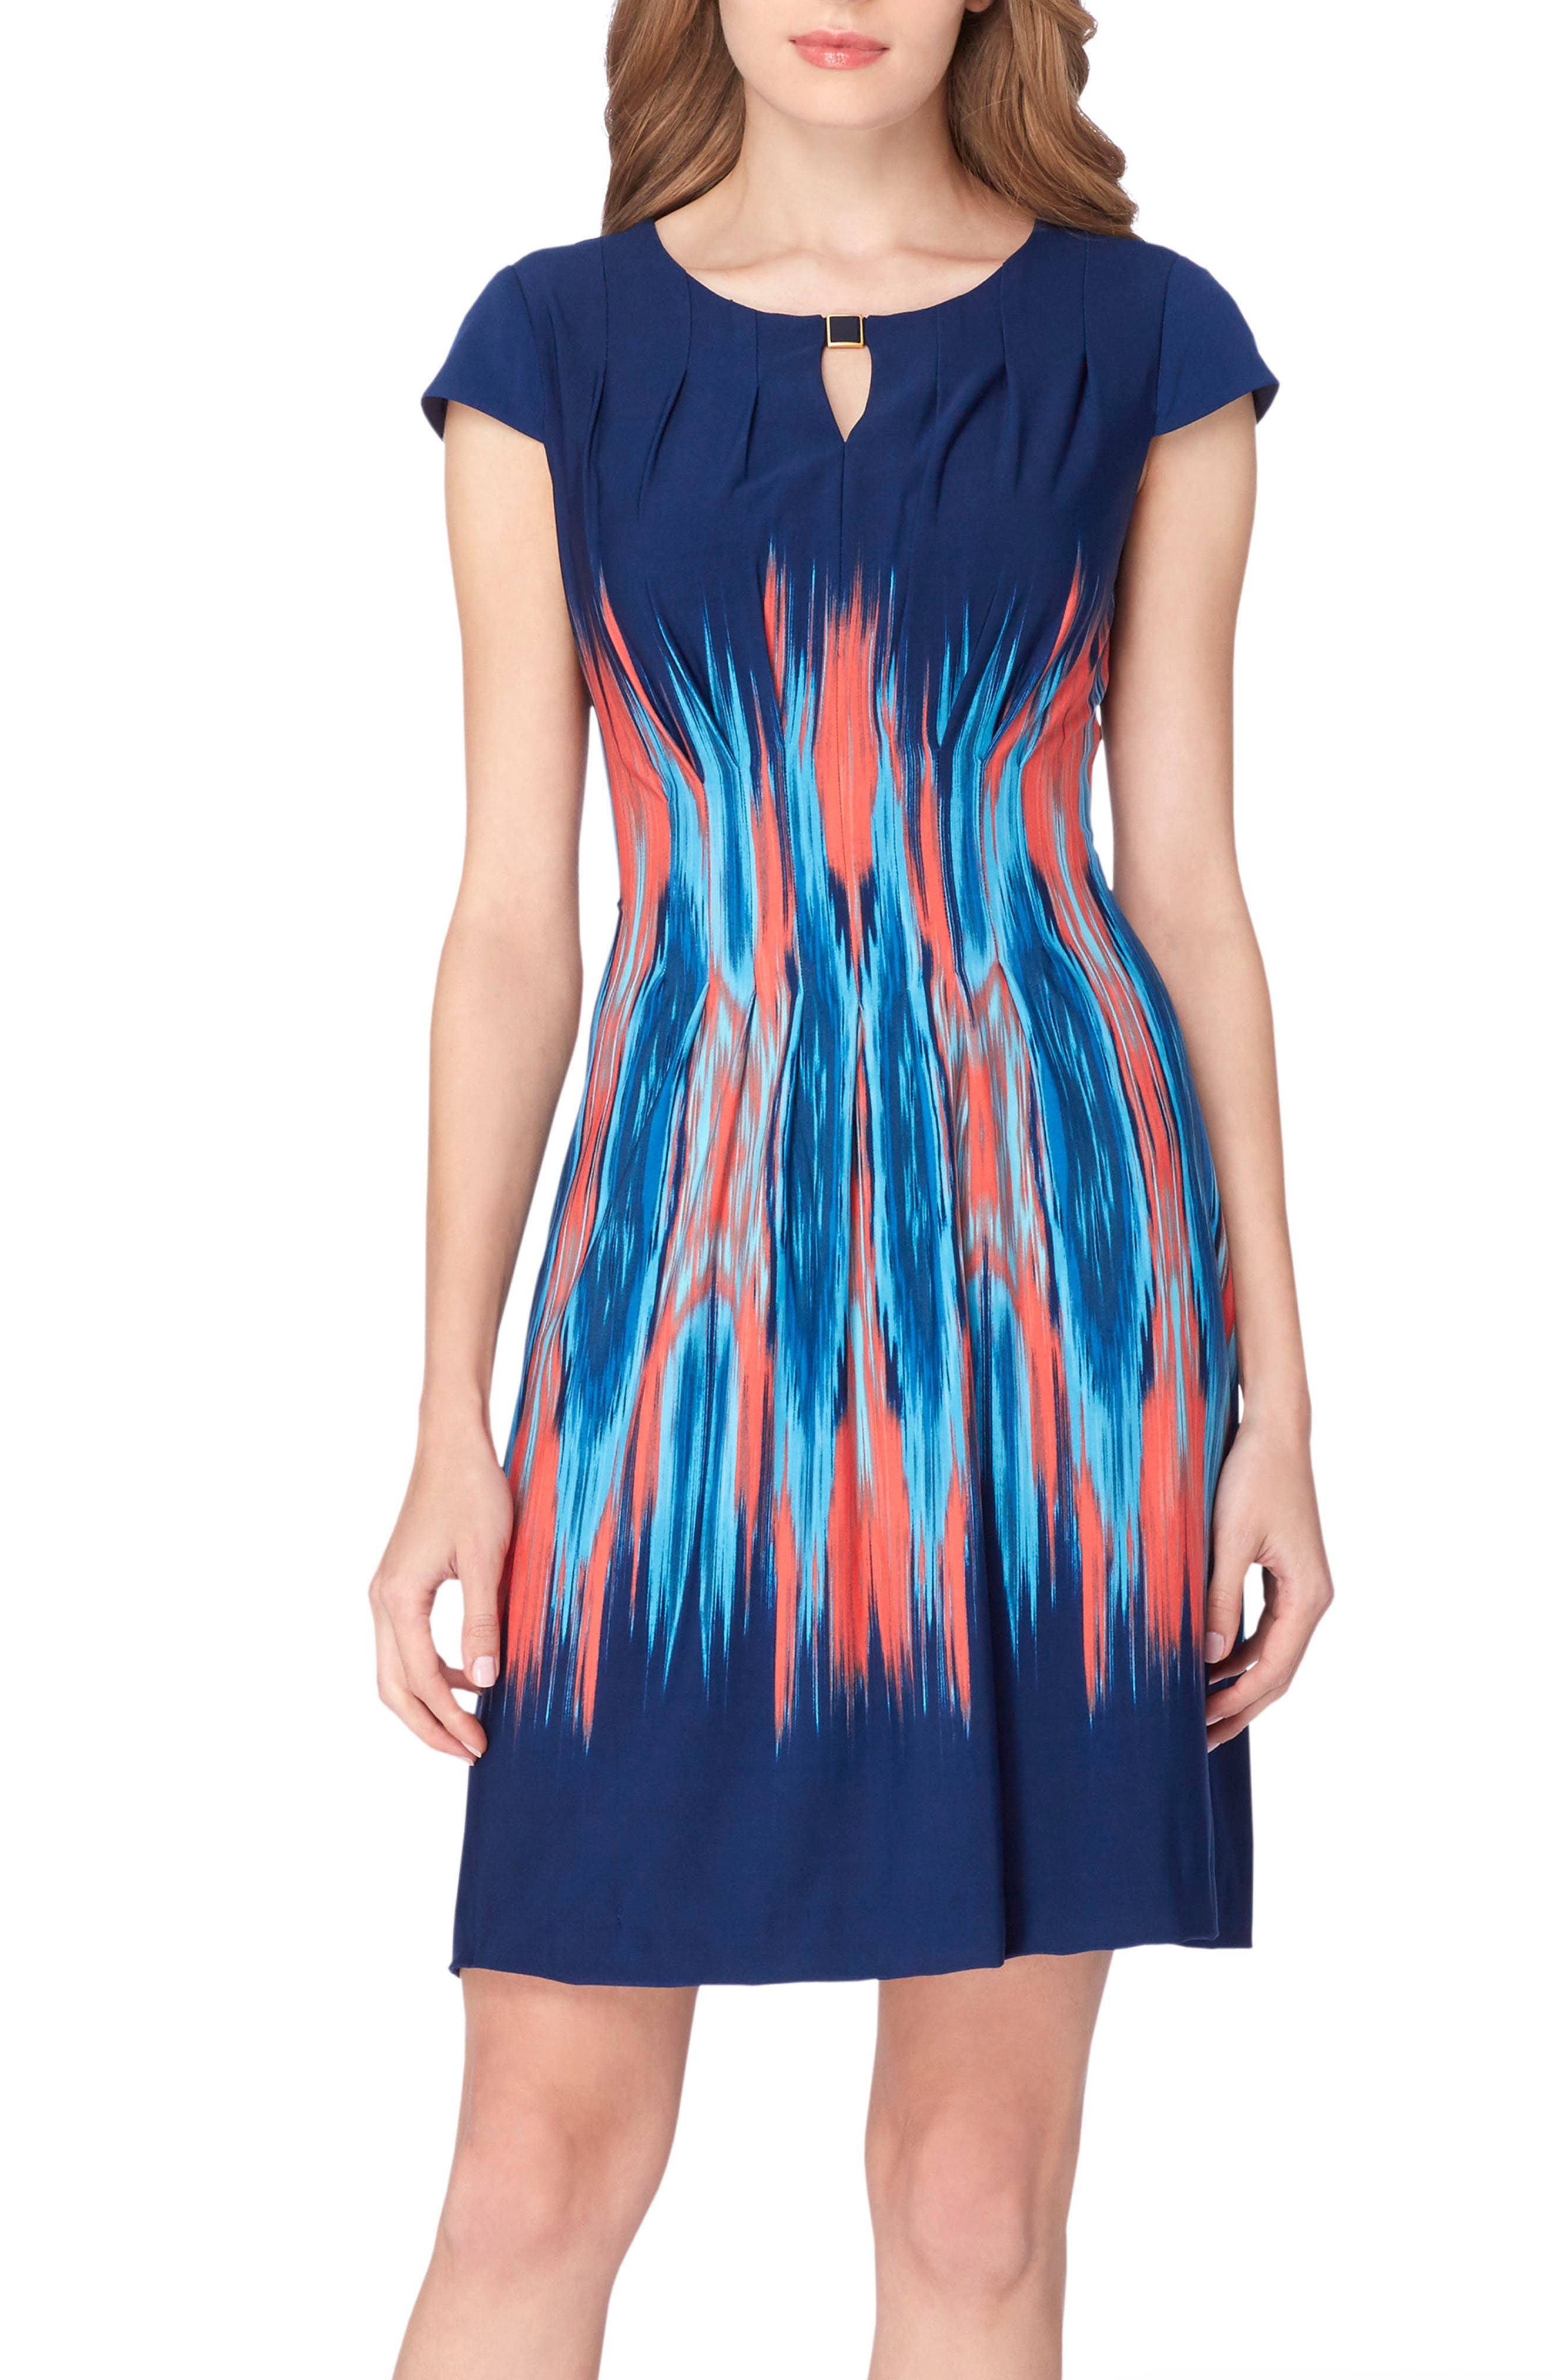 Flame Print Jersey Sheath Dress,                             Main thumbnail 1, color,                             Navy/ Coral/ Turquoise